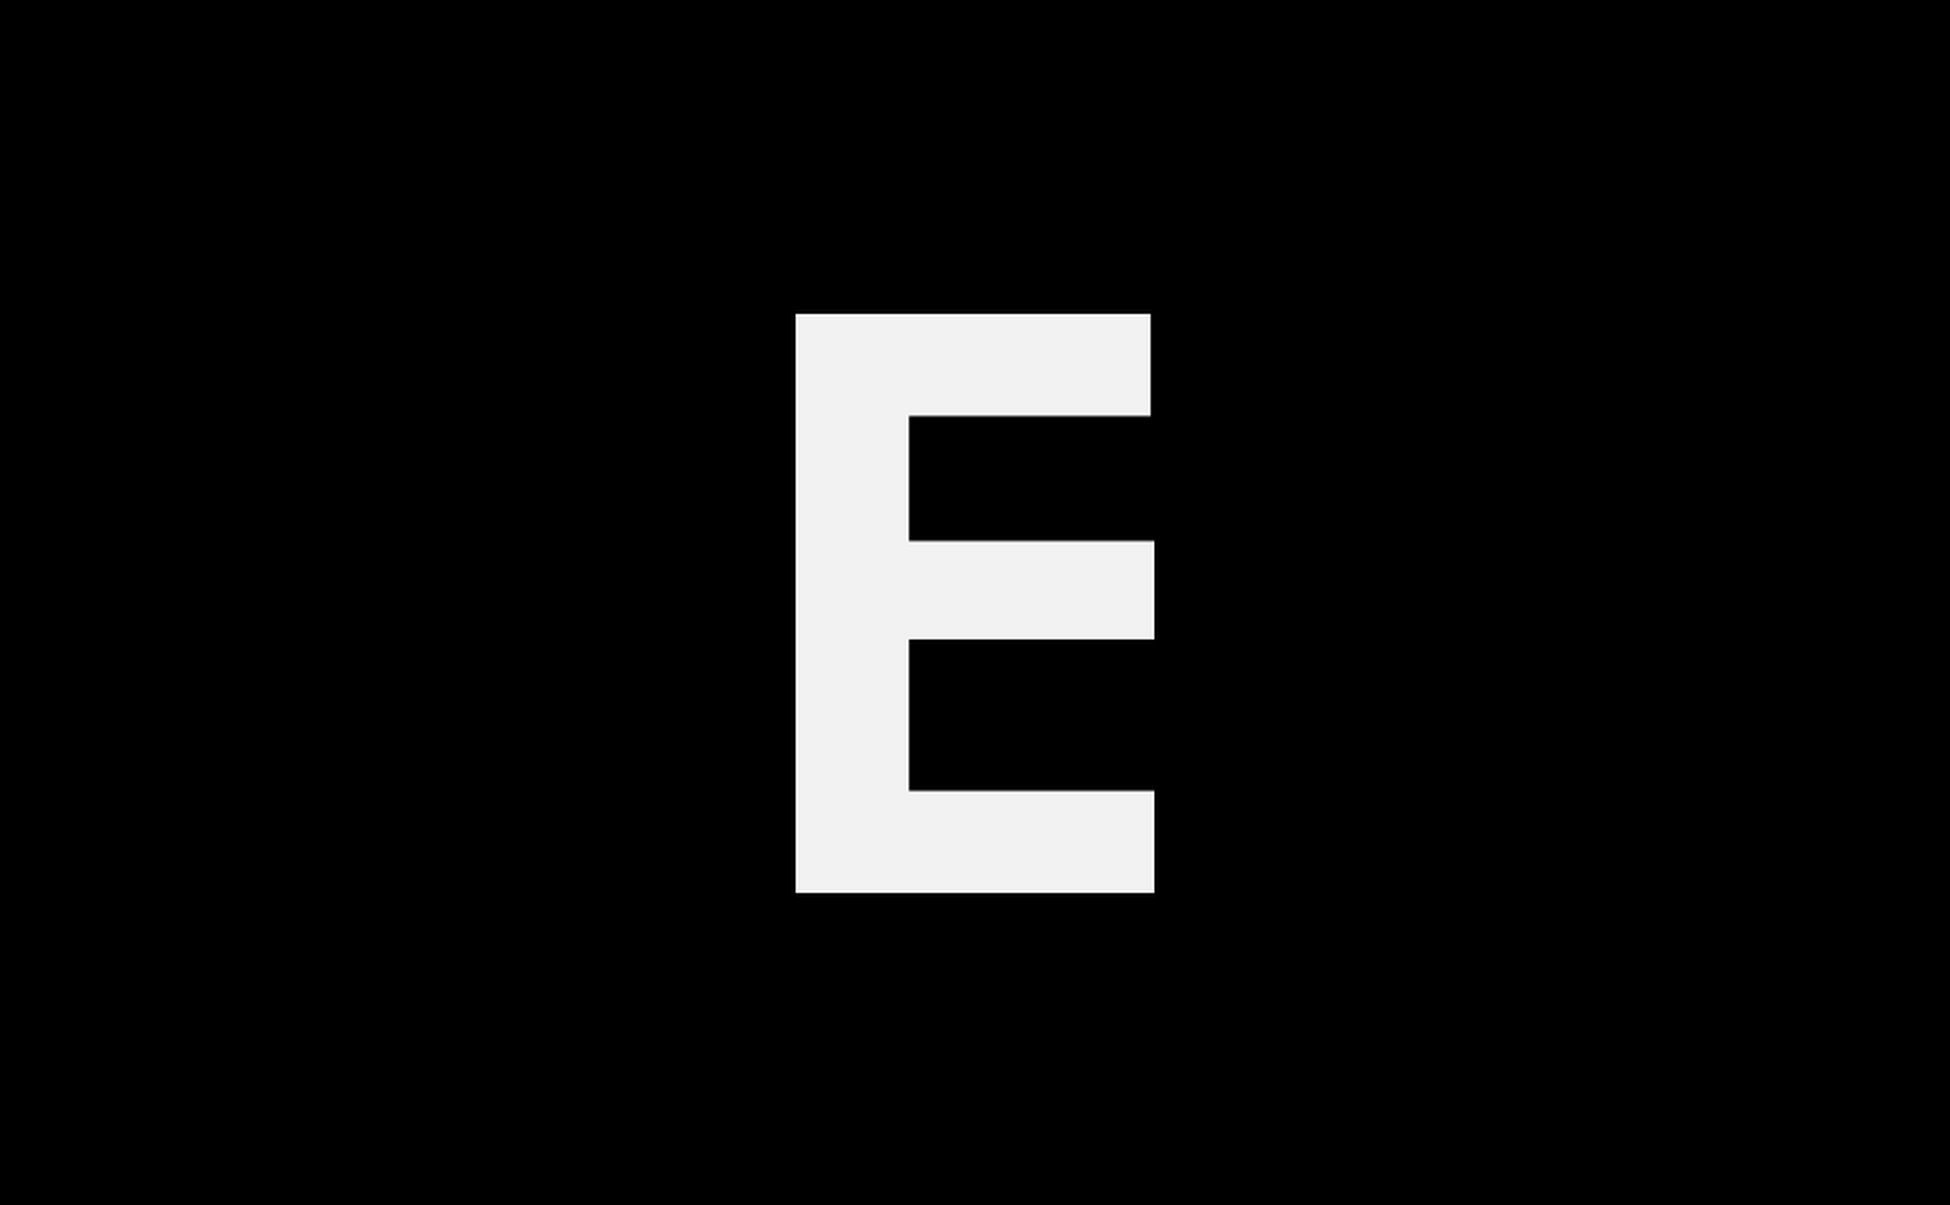 Vintage American bomber landing at Duxford Airport Runway Aviation, Aeroplane, Vintage, Bomber, Landing, Duxford, American, Piston Engine, Day Grass Journey Land Vehicle Landscape Mode Of Transport Nature No People Outdoors Parked Parking Sky Stationary Transportation